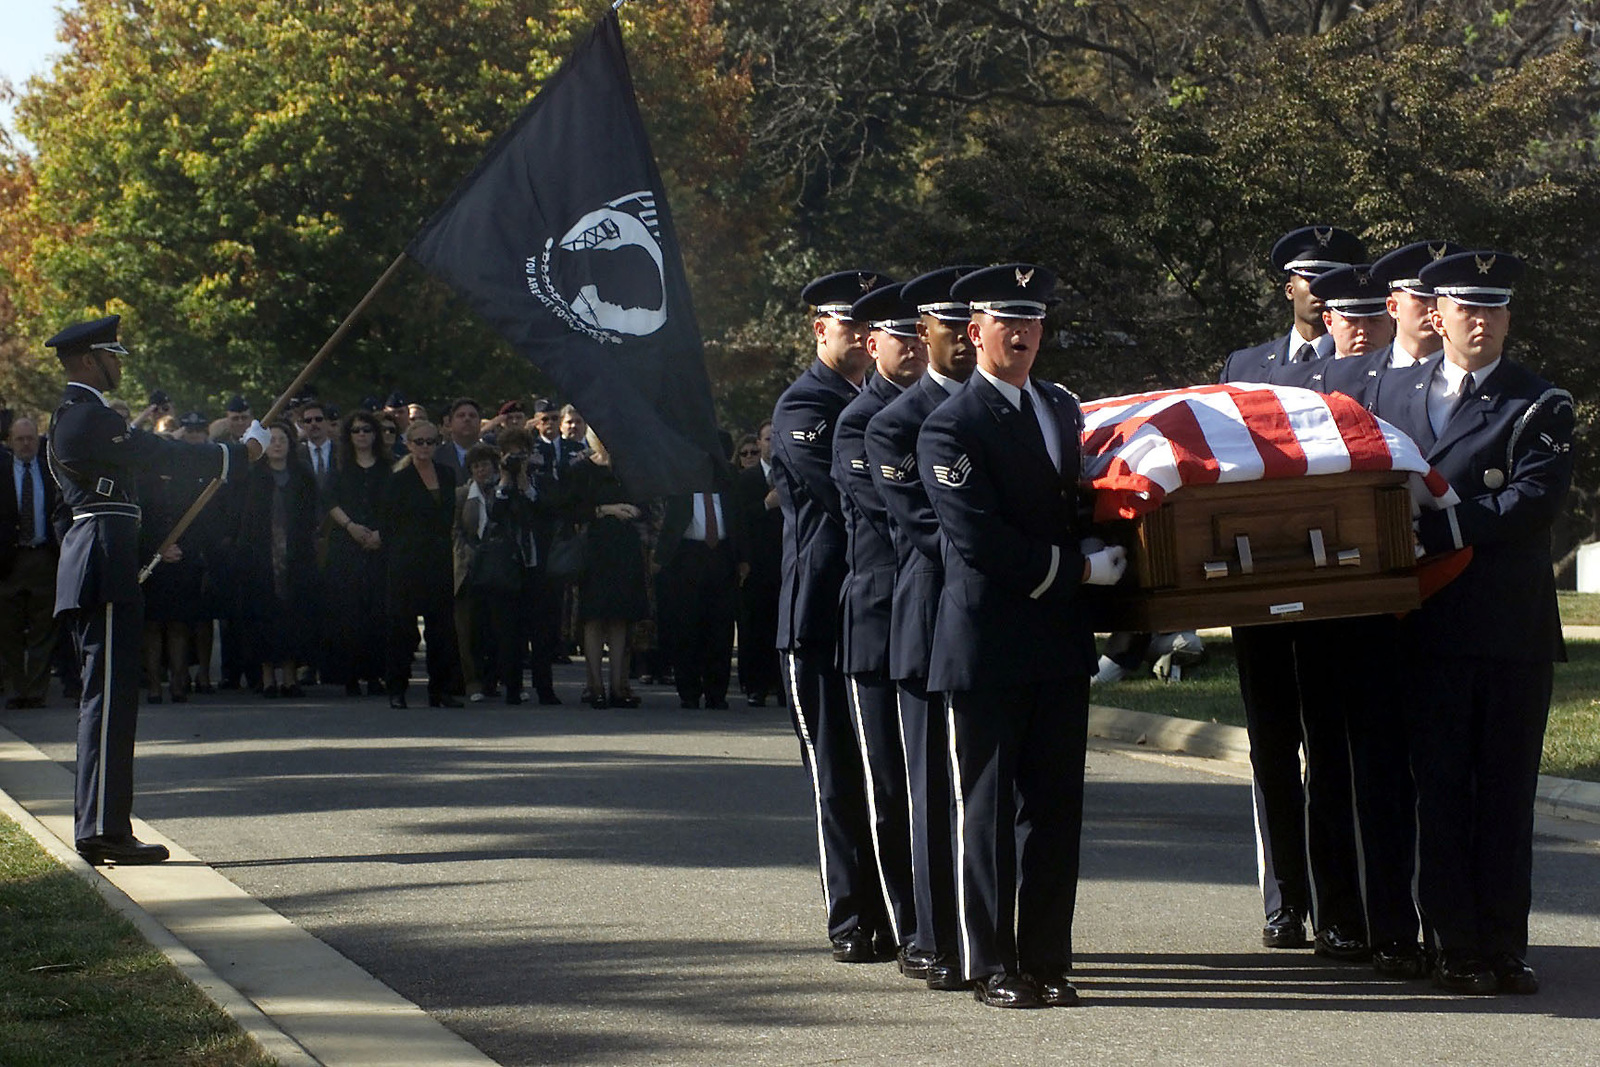 US Air Force members hold a flag draped coffin during a full honor funeral for US Air Force Second Lieutenant Richard Vandegeer at Arlington National Cemetery on October 27, 2000